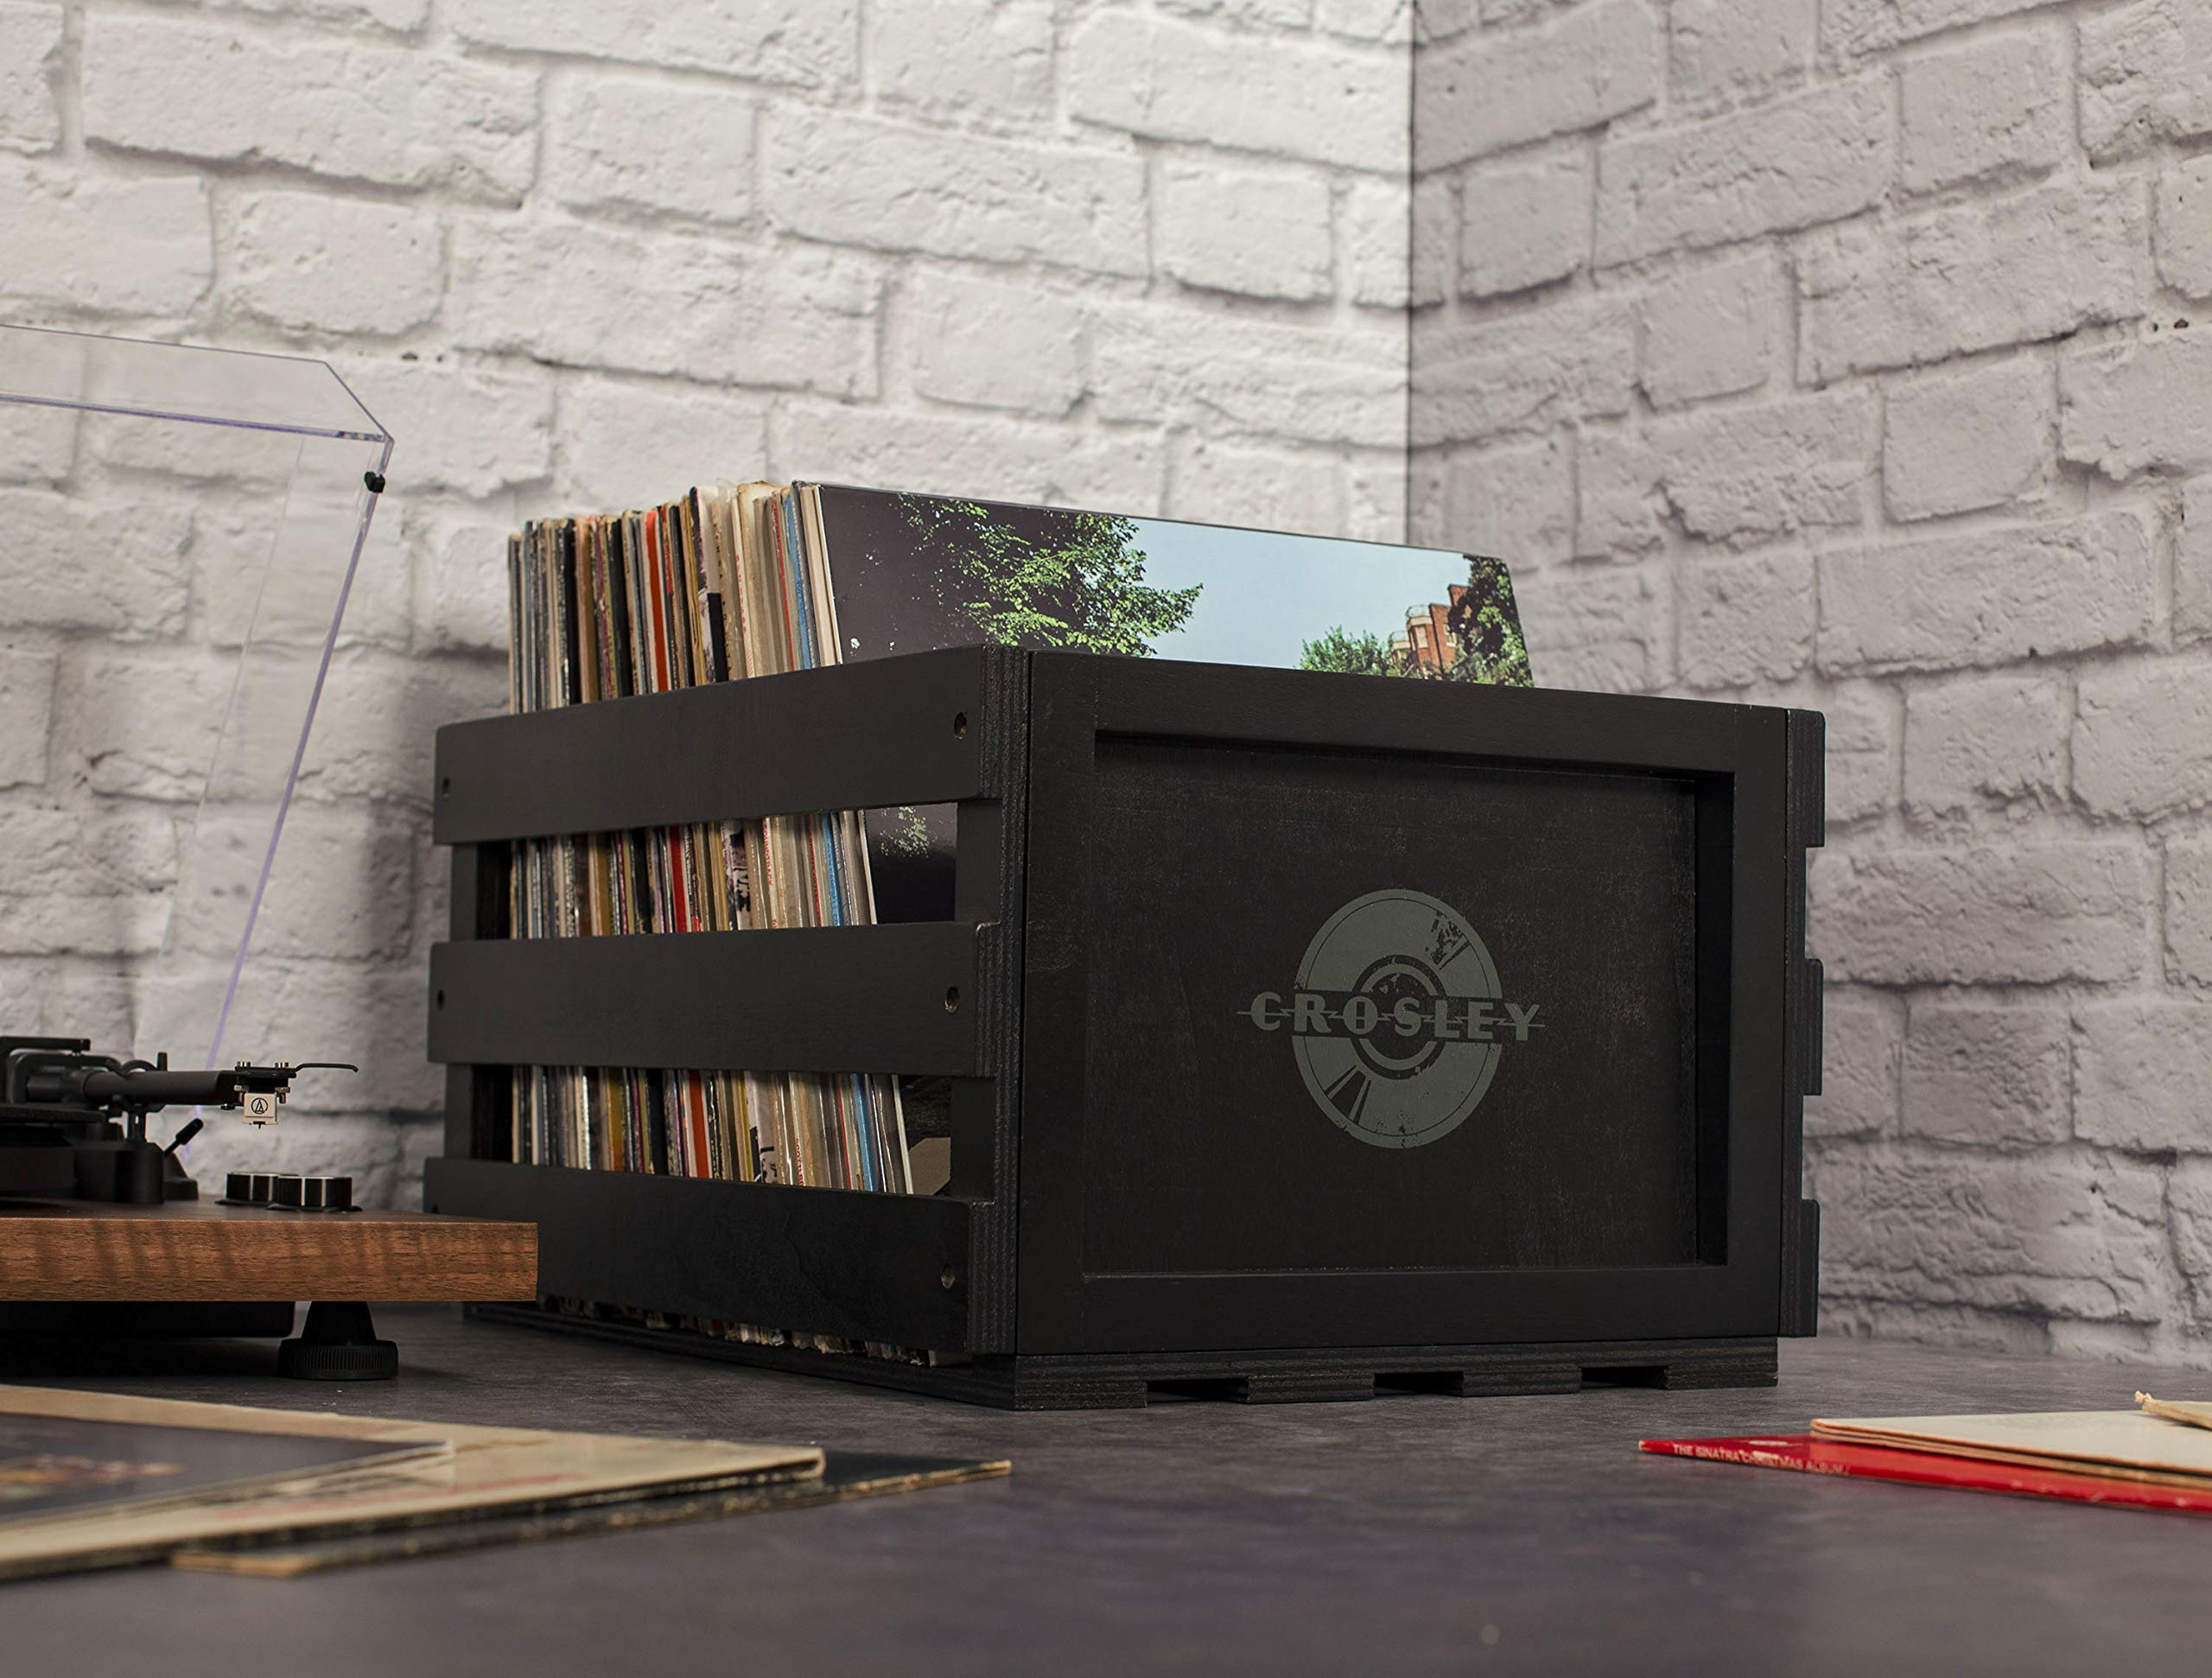 Crosley AC1004A-BK Record Storage Crate Holds up to 75 Albums, Black by Crosley (Image #6)